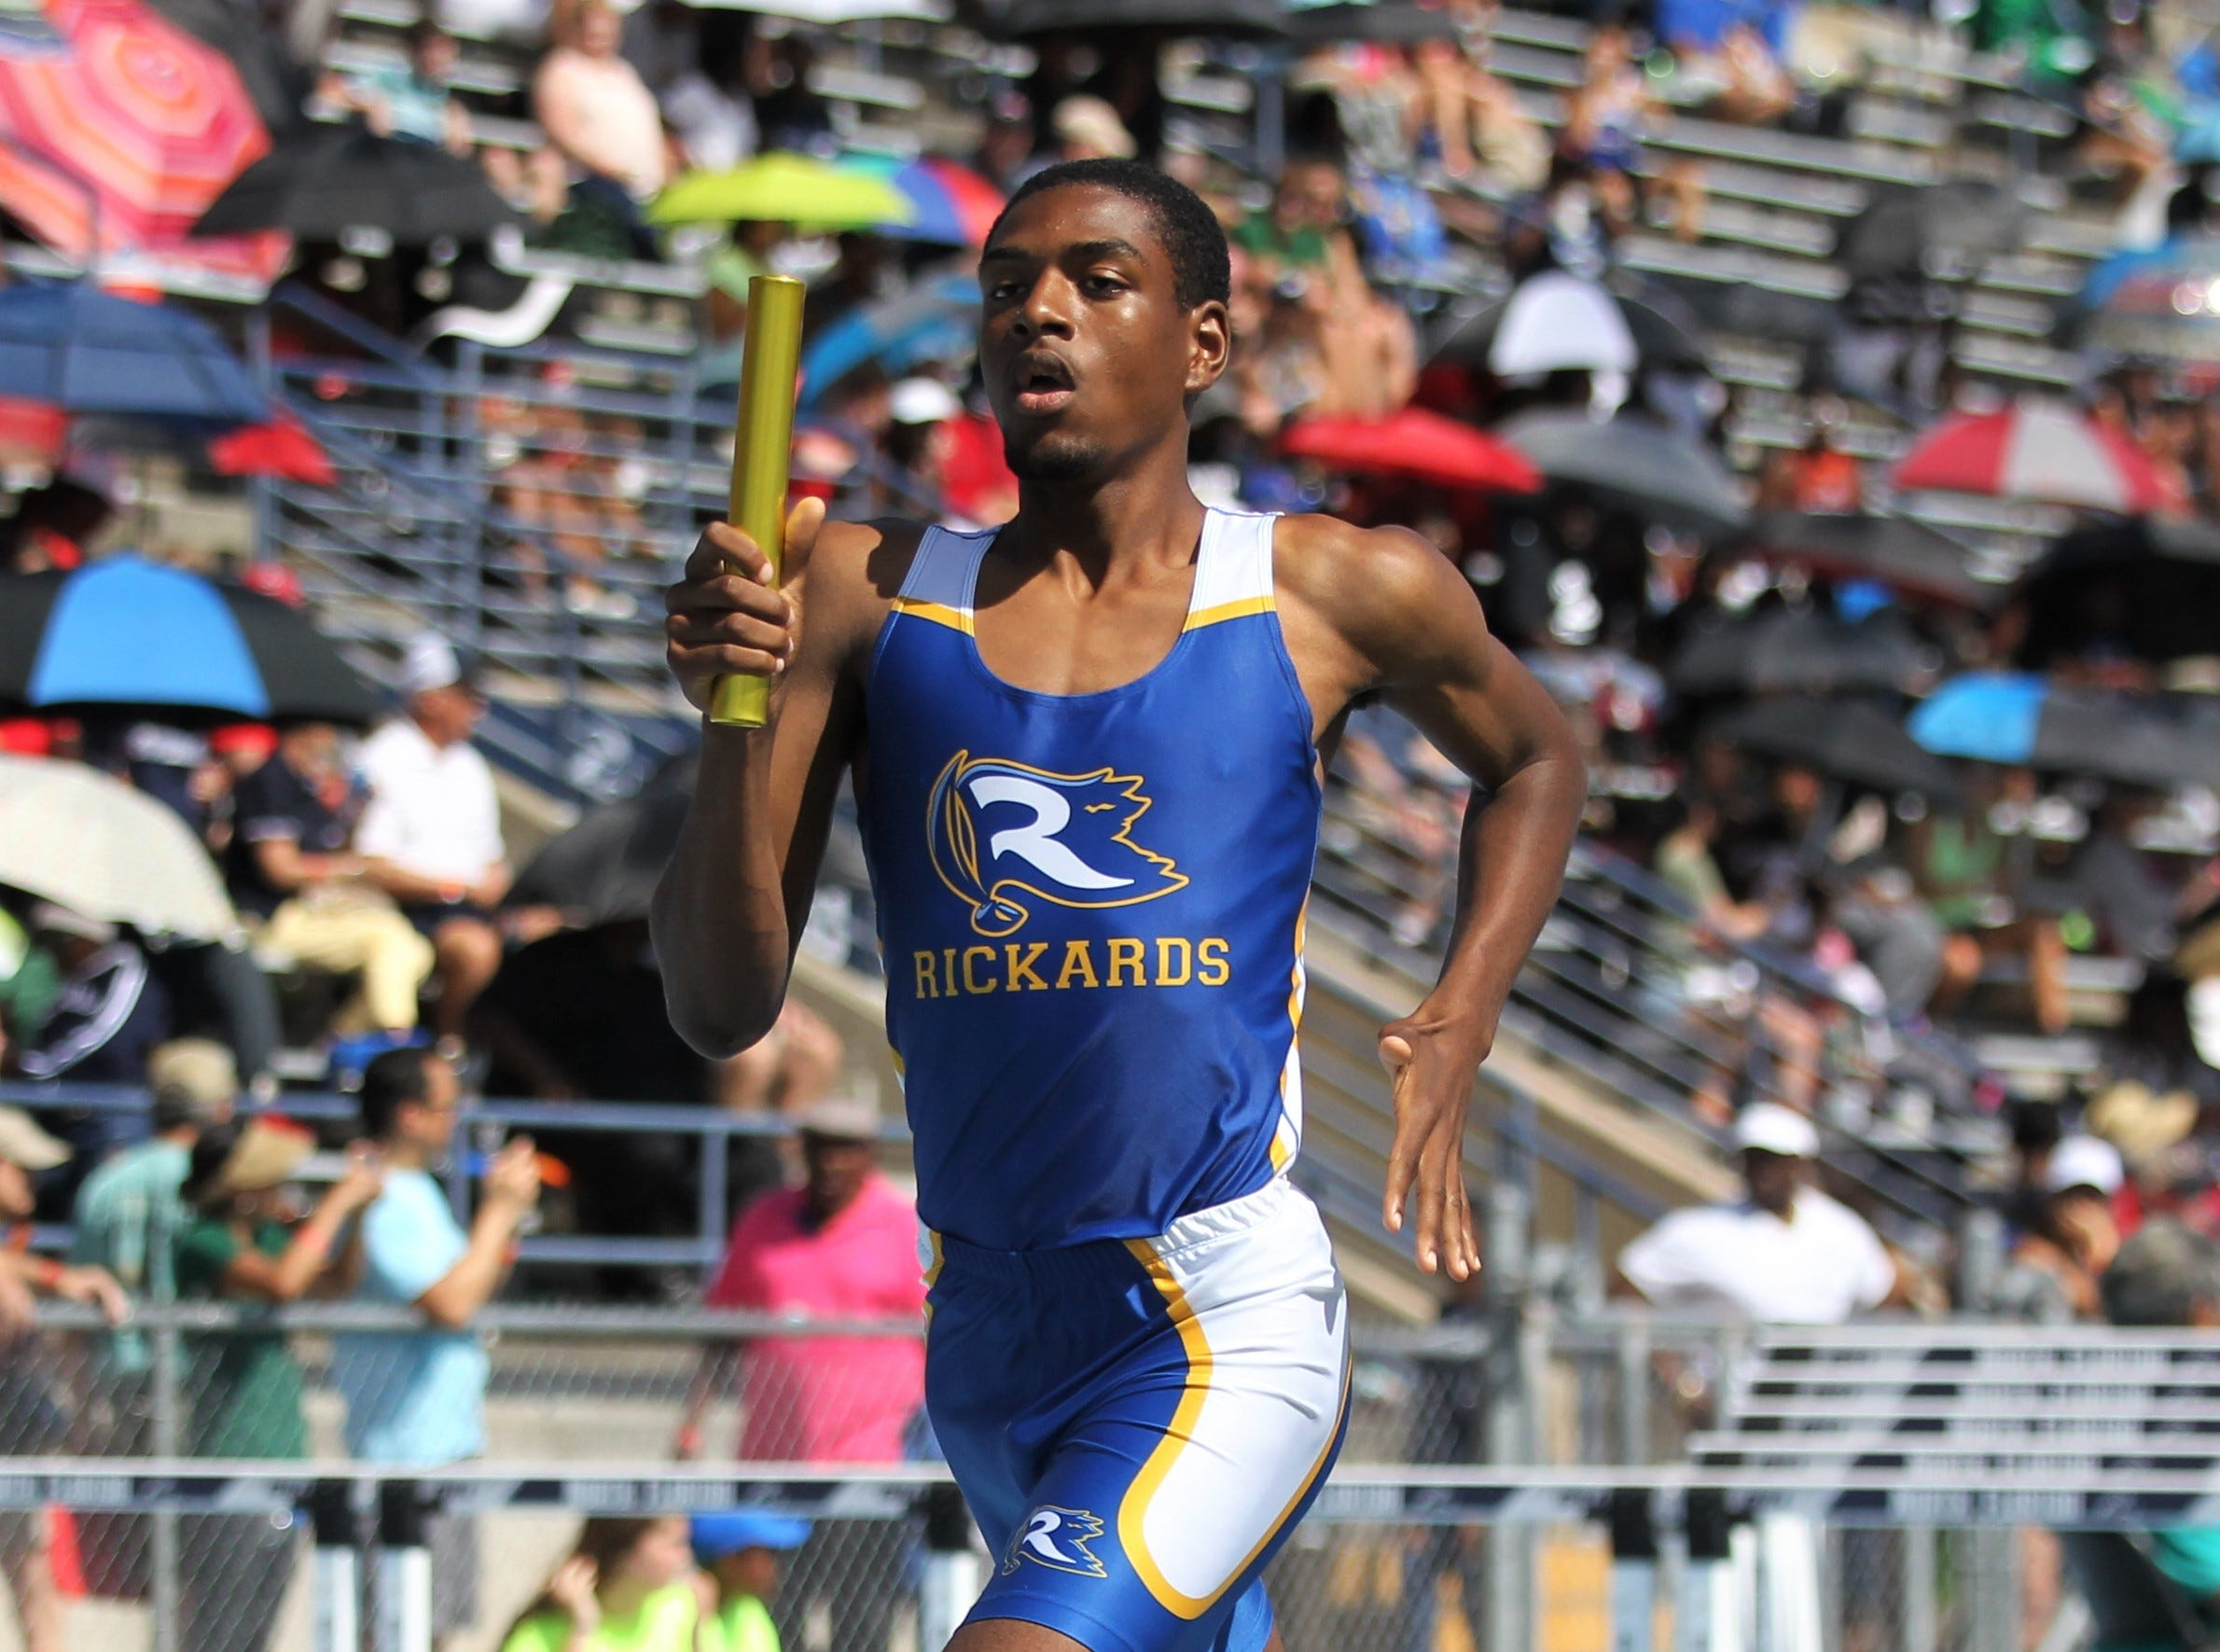 Rickards senior Chris Porter runs a 4x800 leg during the FHSAA Track and Field State Championships at UNF's Hodges Stadium in Jacksonville on May 4, 2019.